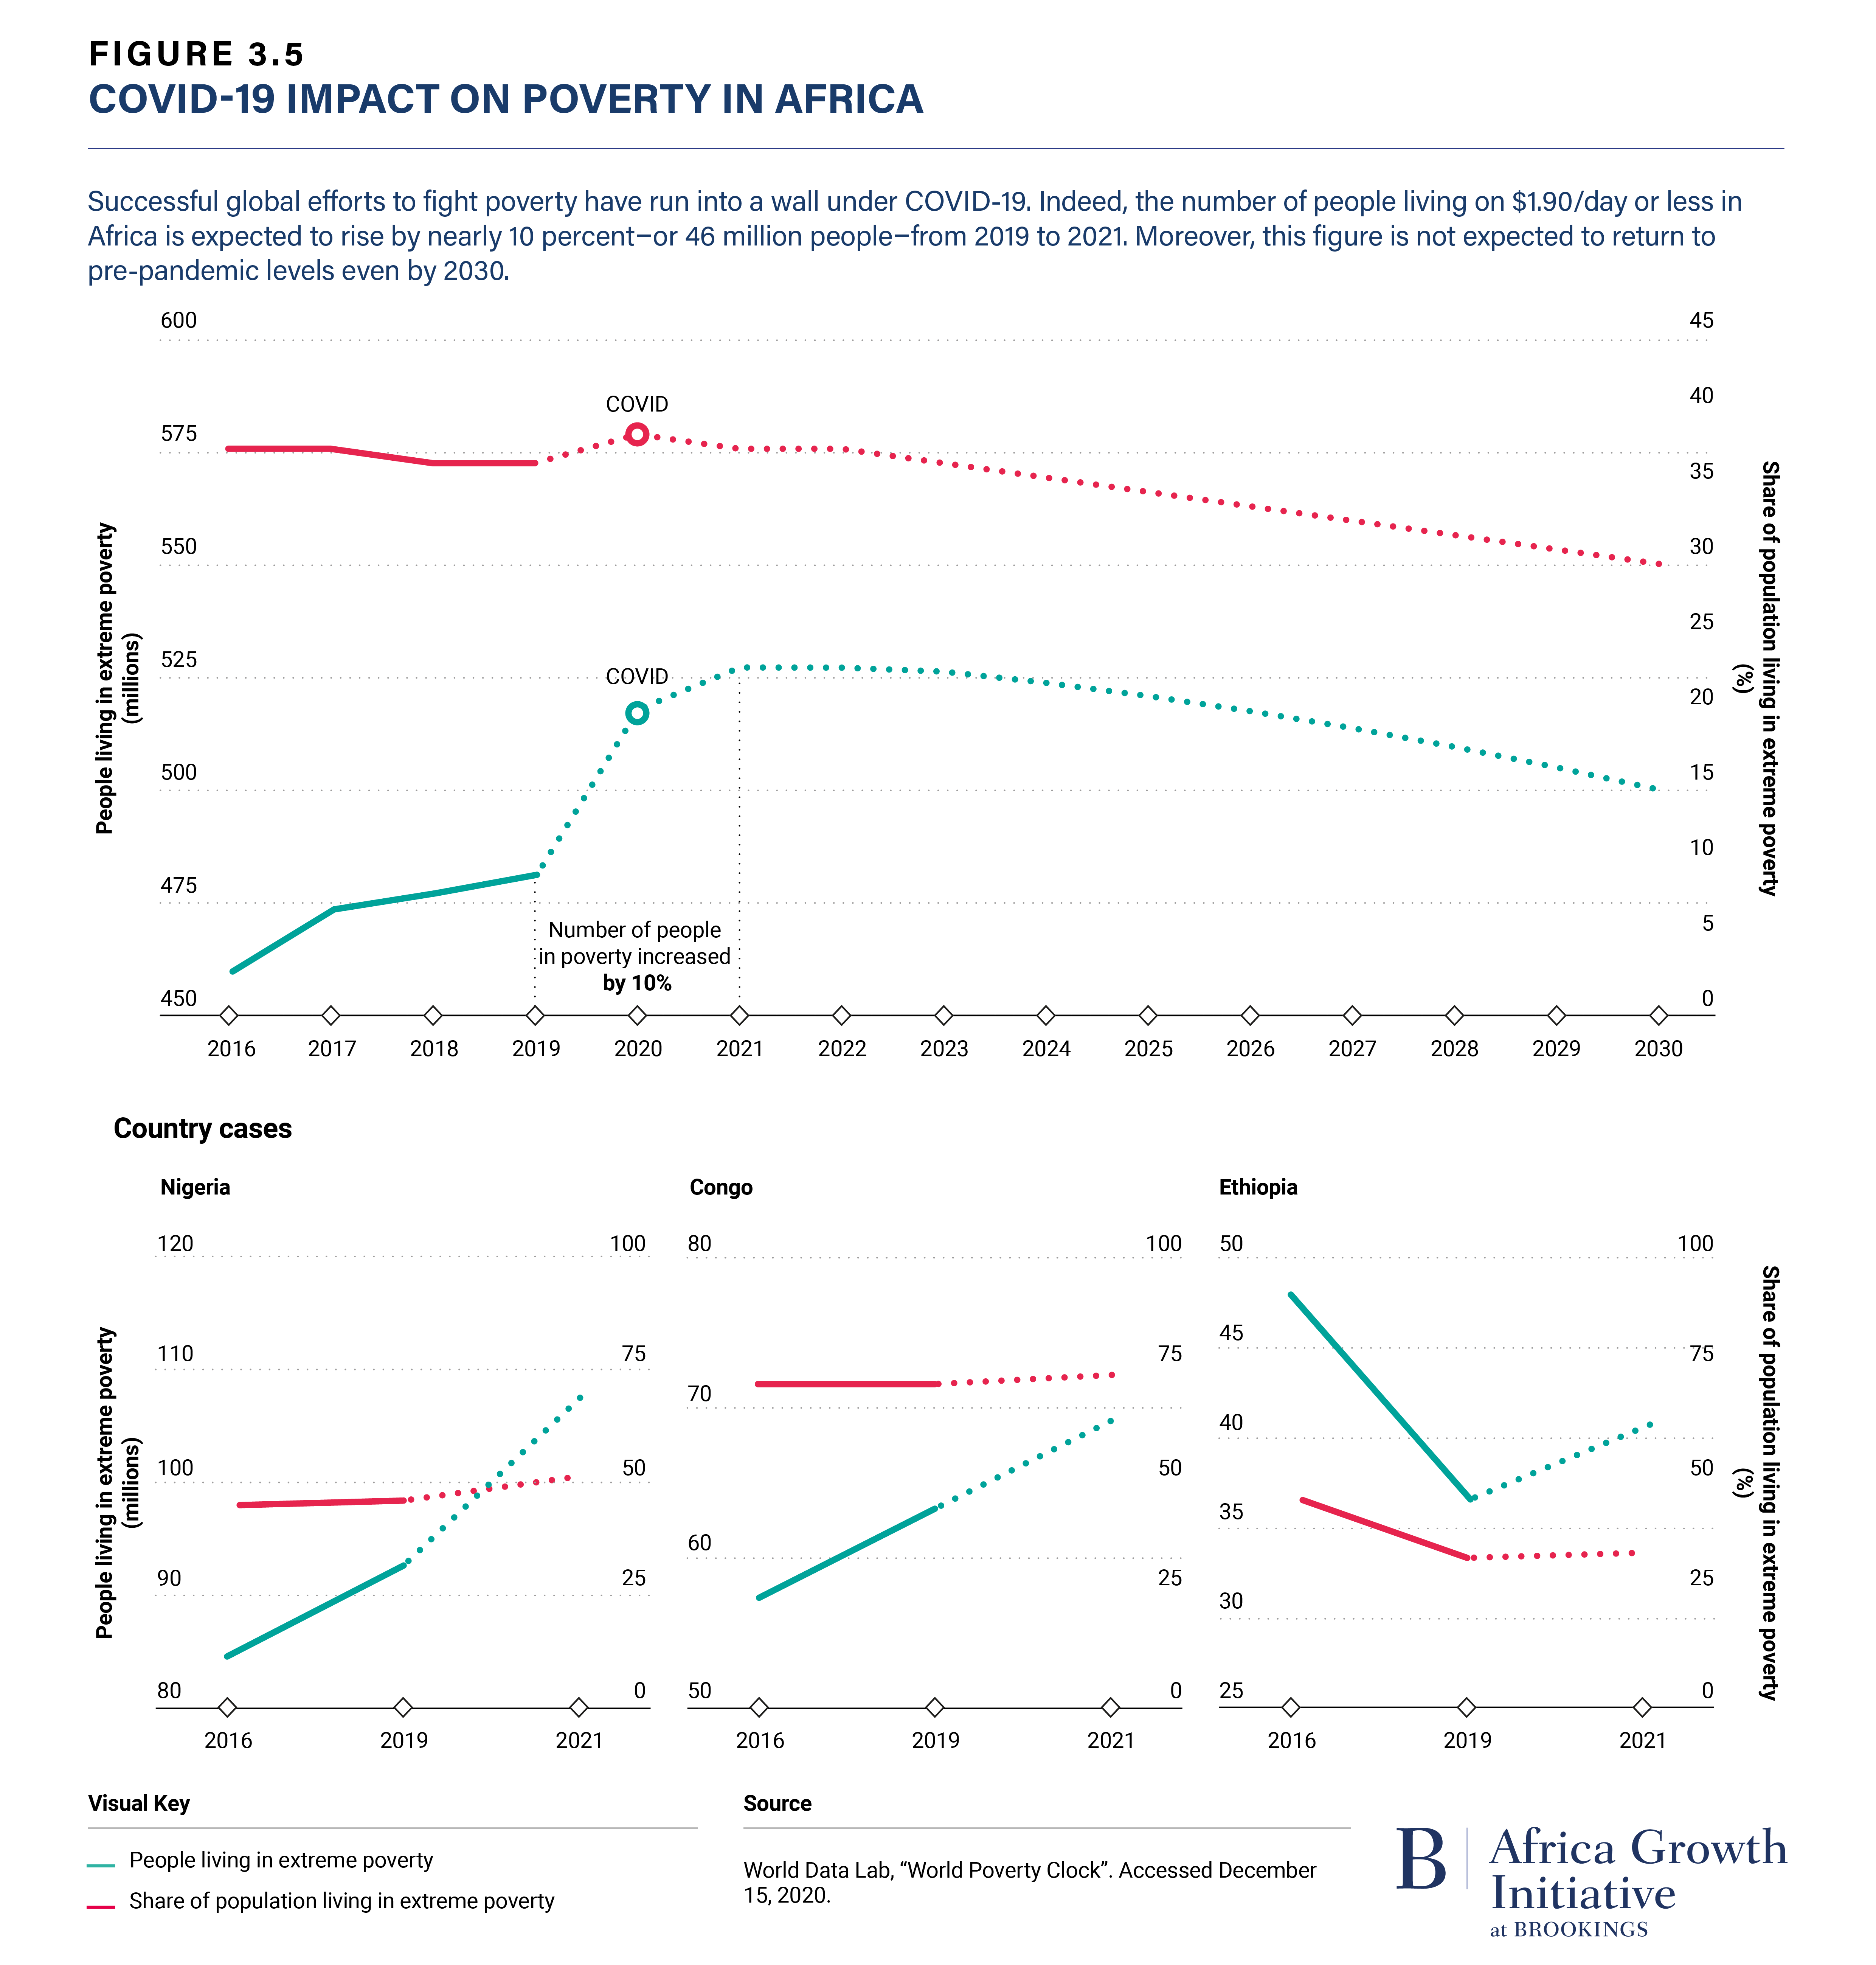 Figure 3.5 COVID-19 Impact on Poverty in Africa